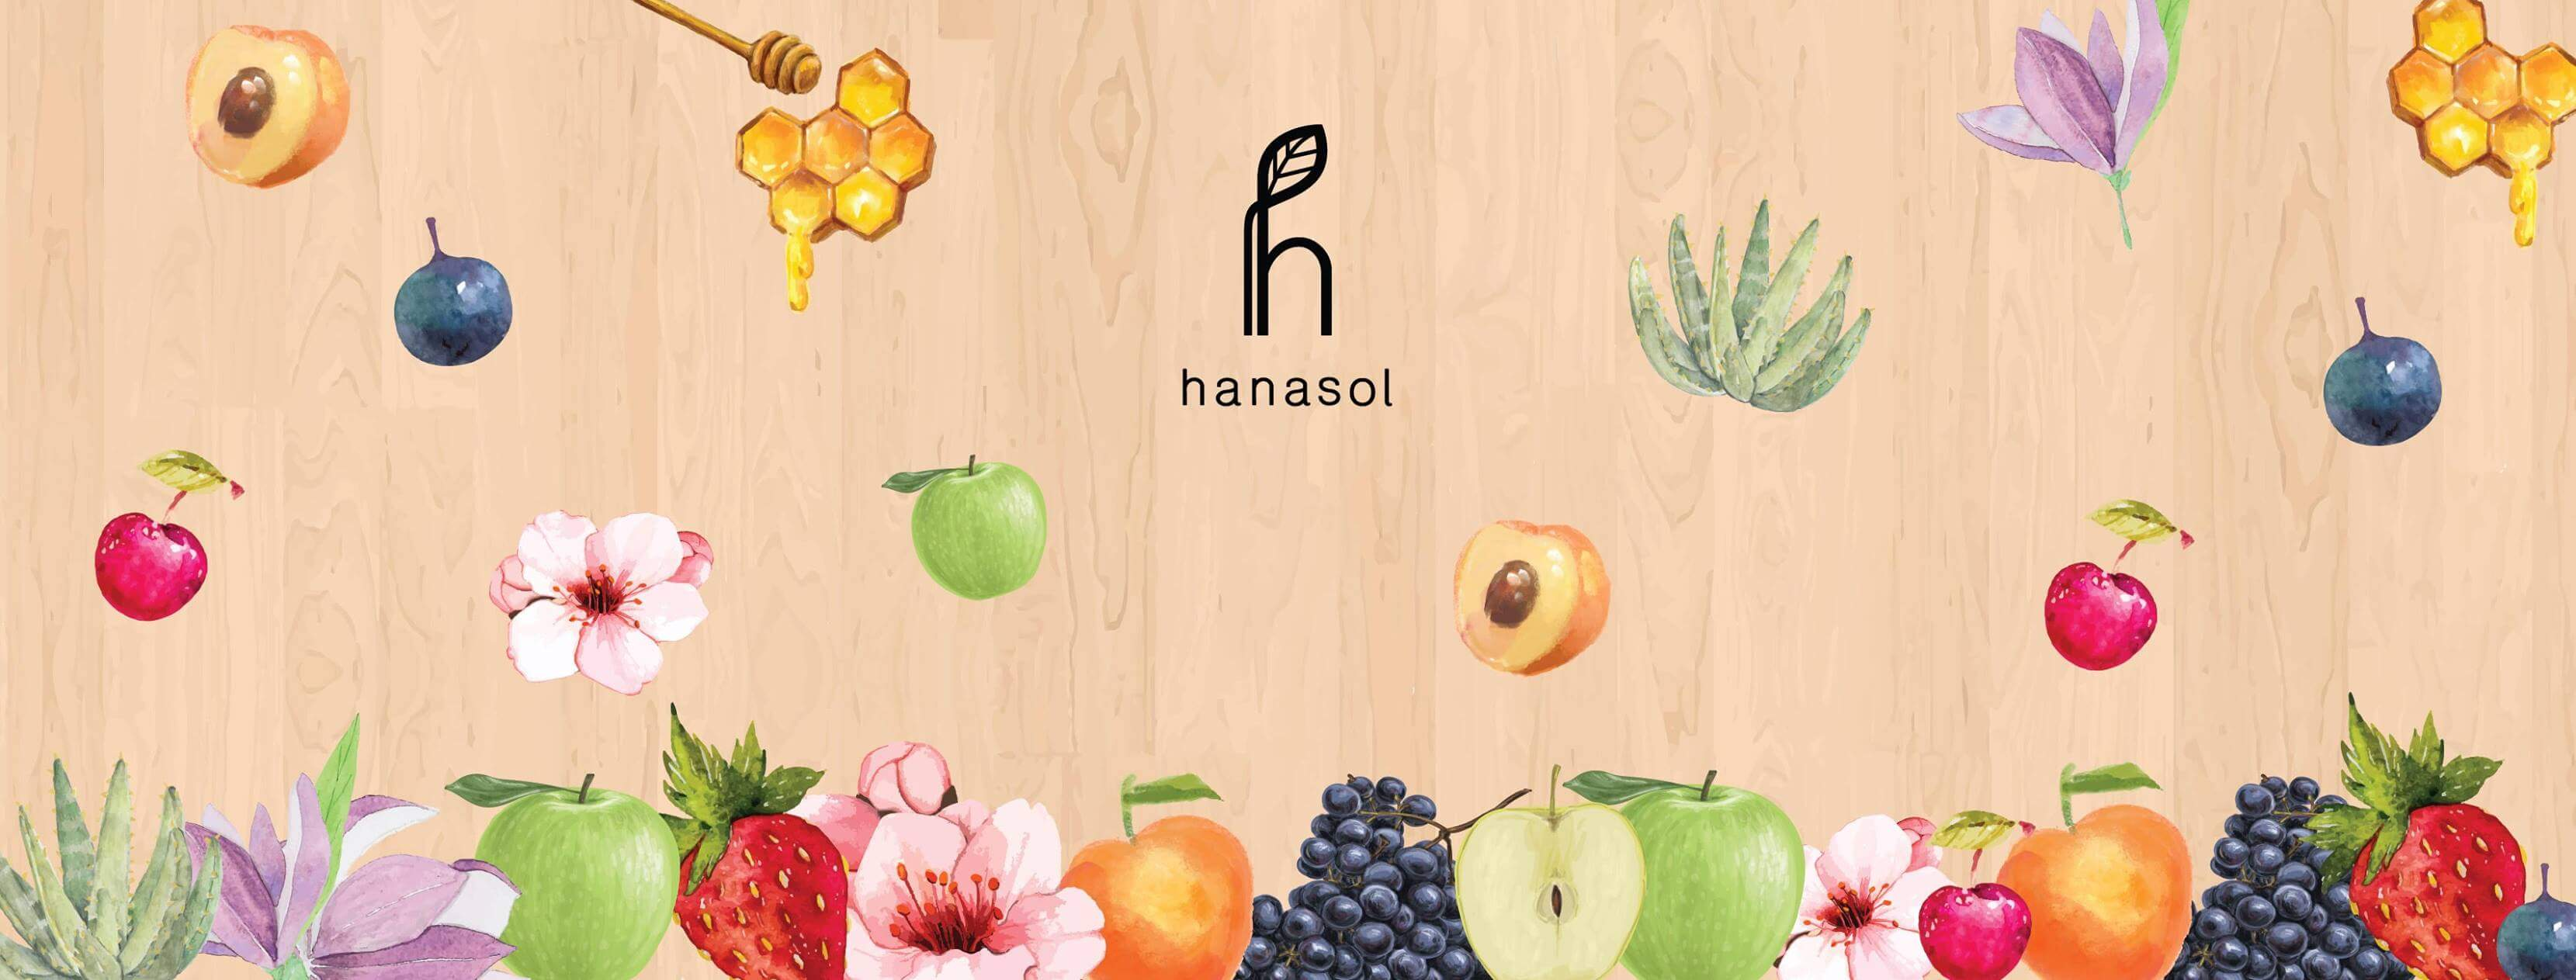 Hanasol, Hanasol Lotion Bulgaria Rose, Hanasol Lotion Bulgaria Rose รีวิว, Hanasol Lotion French Lavender ราคา, Hanasol Lotion Bulgaria Rose pantip, Hanasol Lotion Bulgaria Rose 200 ml.